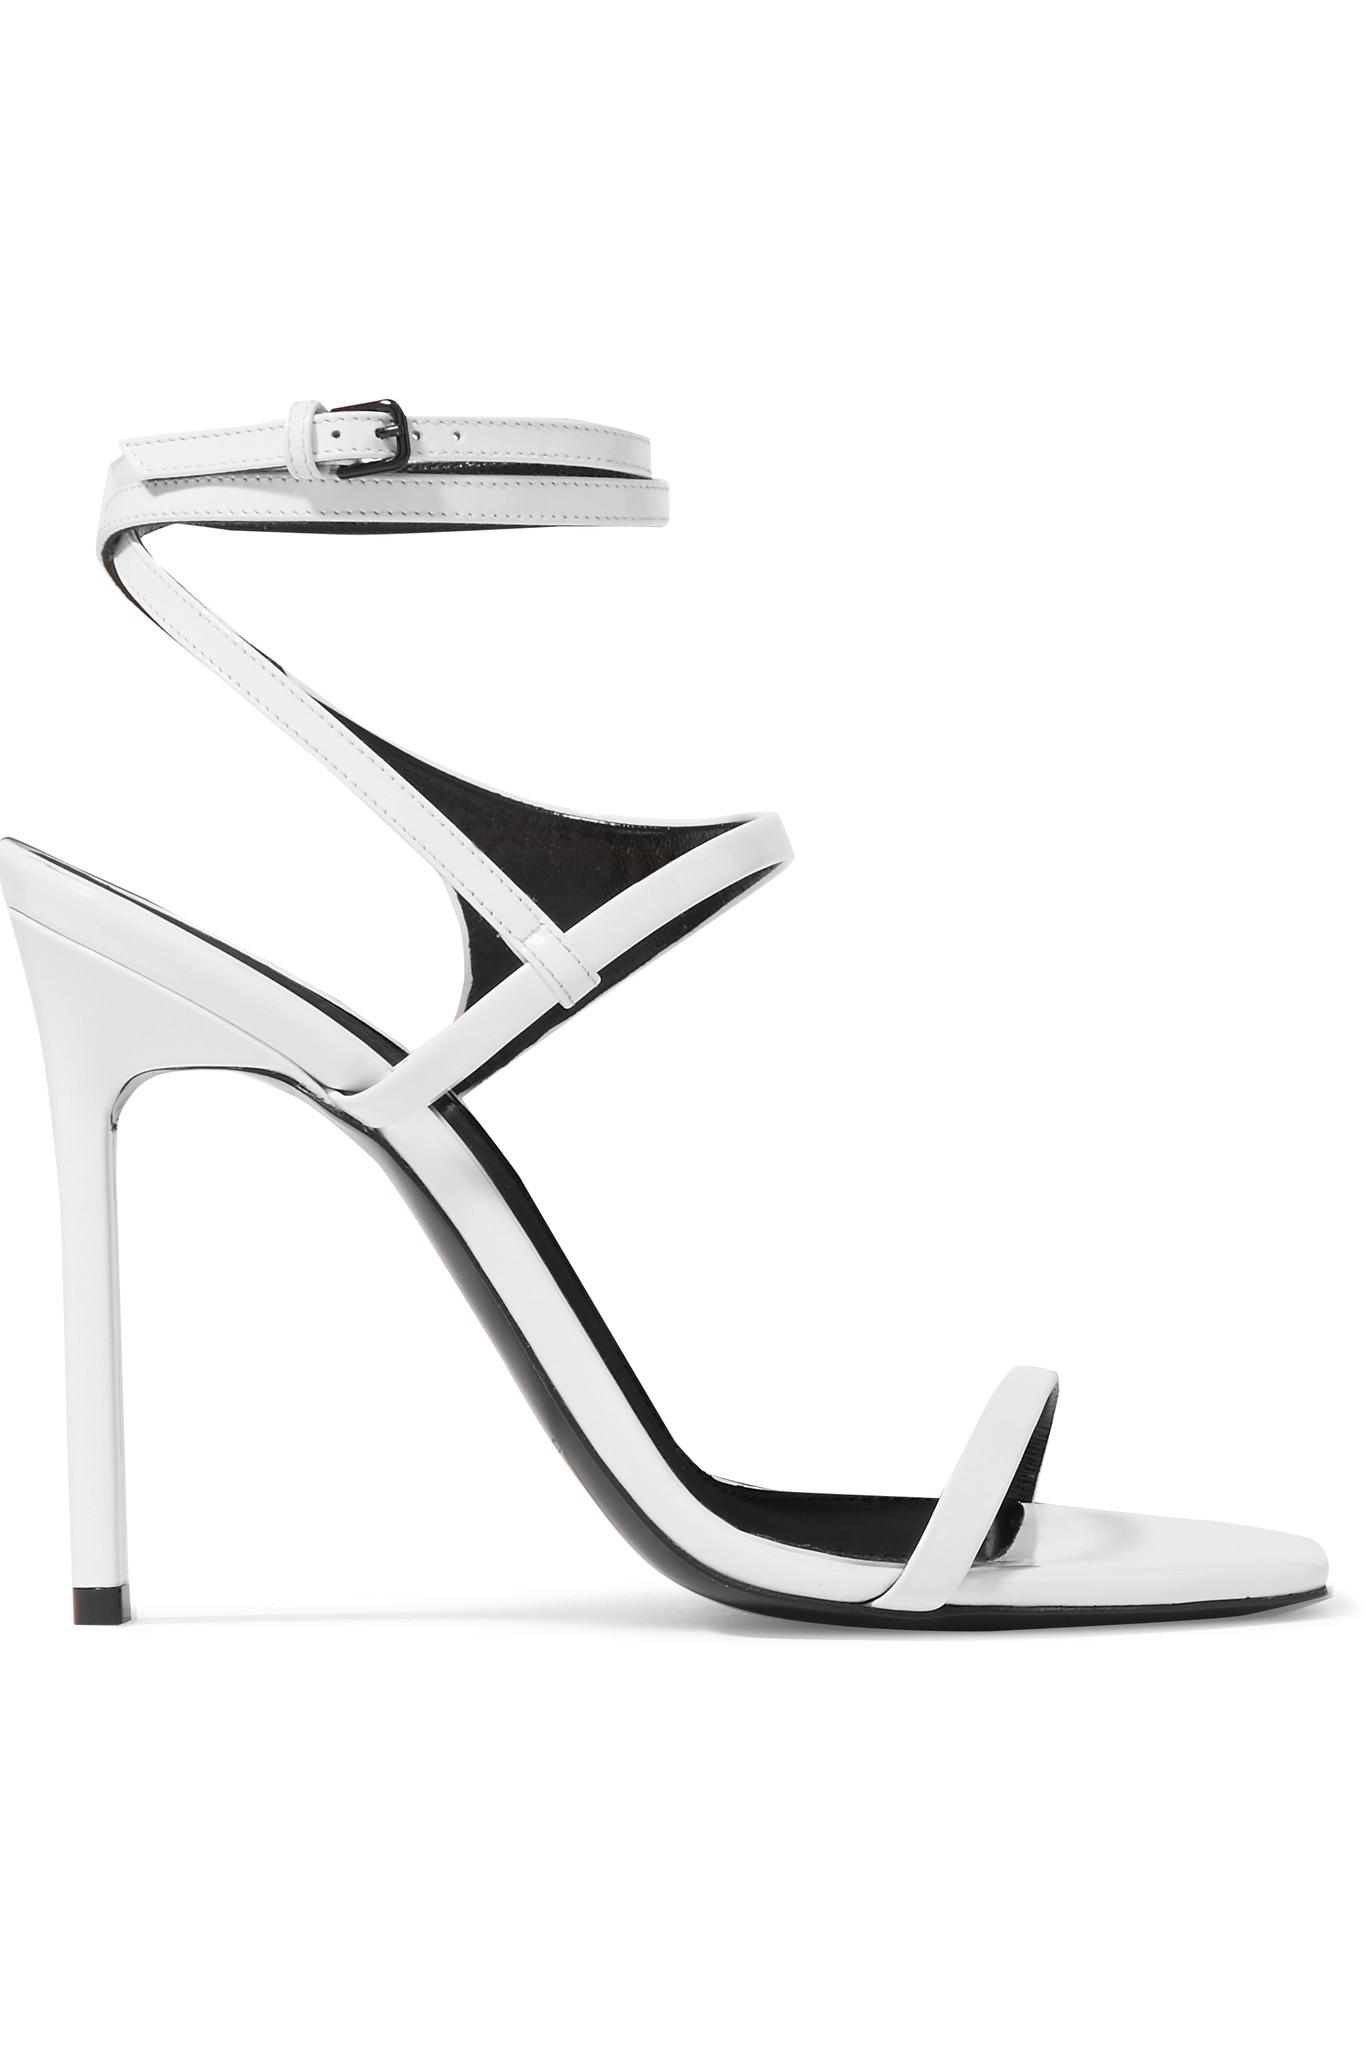 1a44fe7e6c37 Saint Laurent Amber Glossed-leather Sandals in White - Lyst